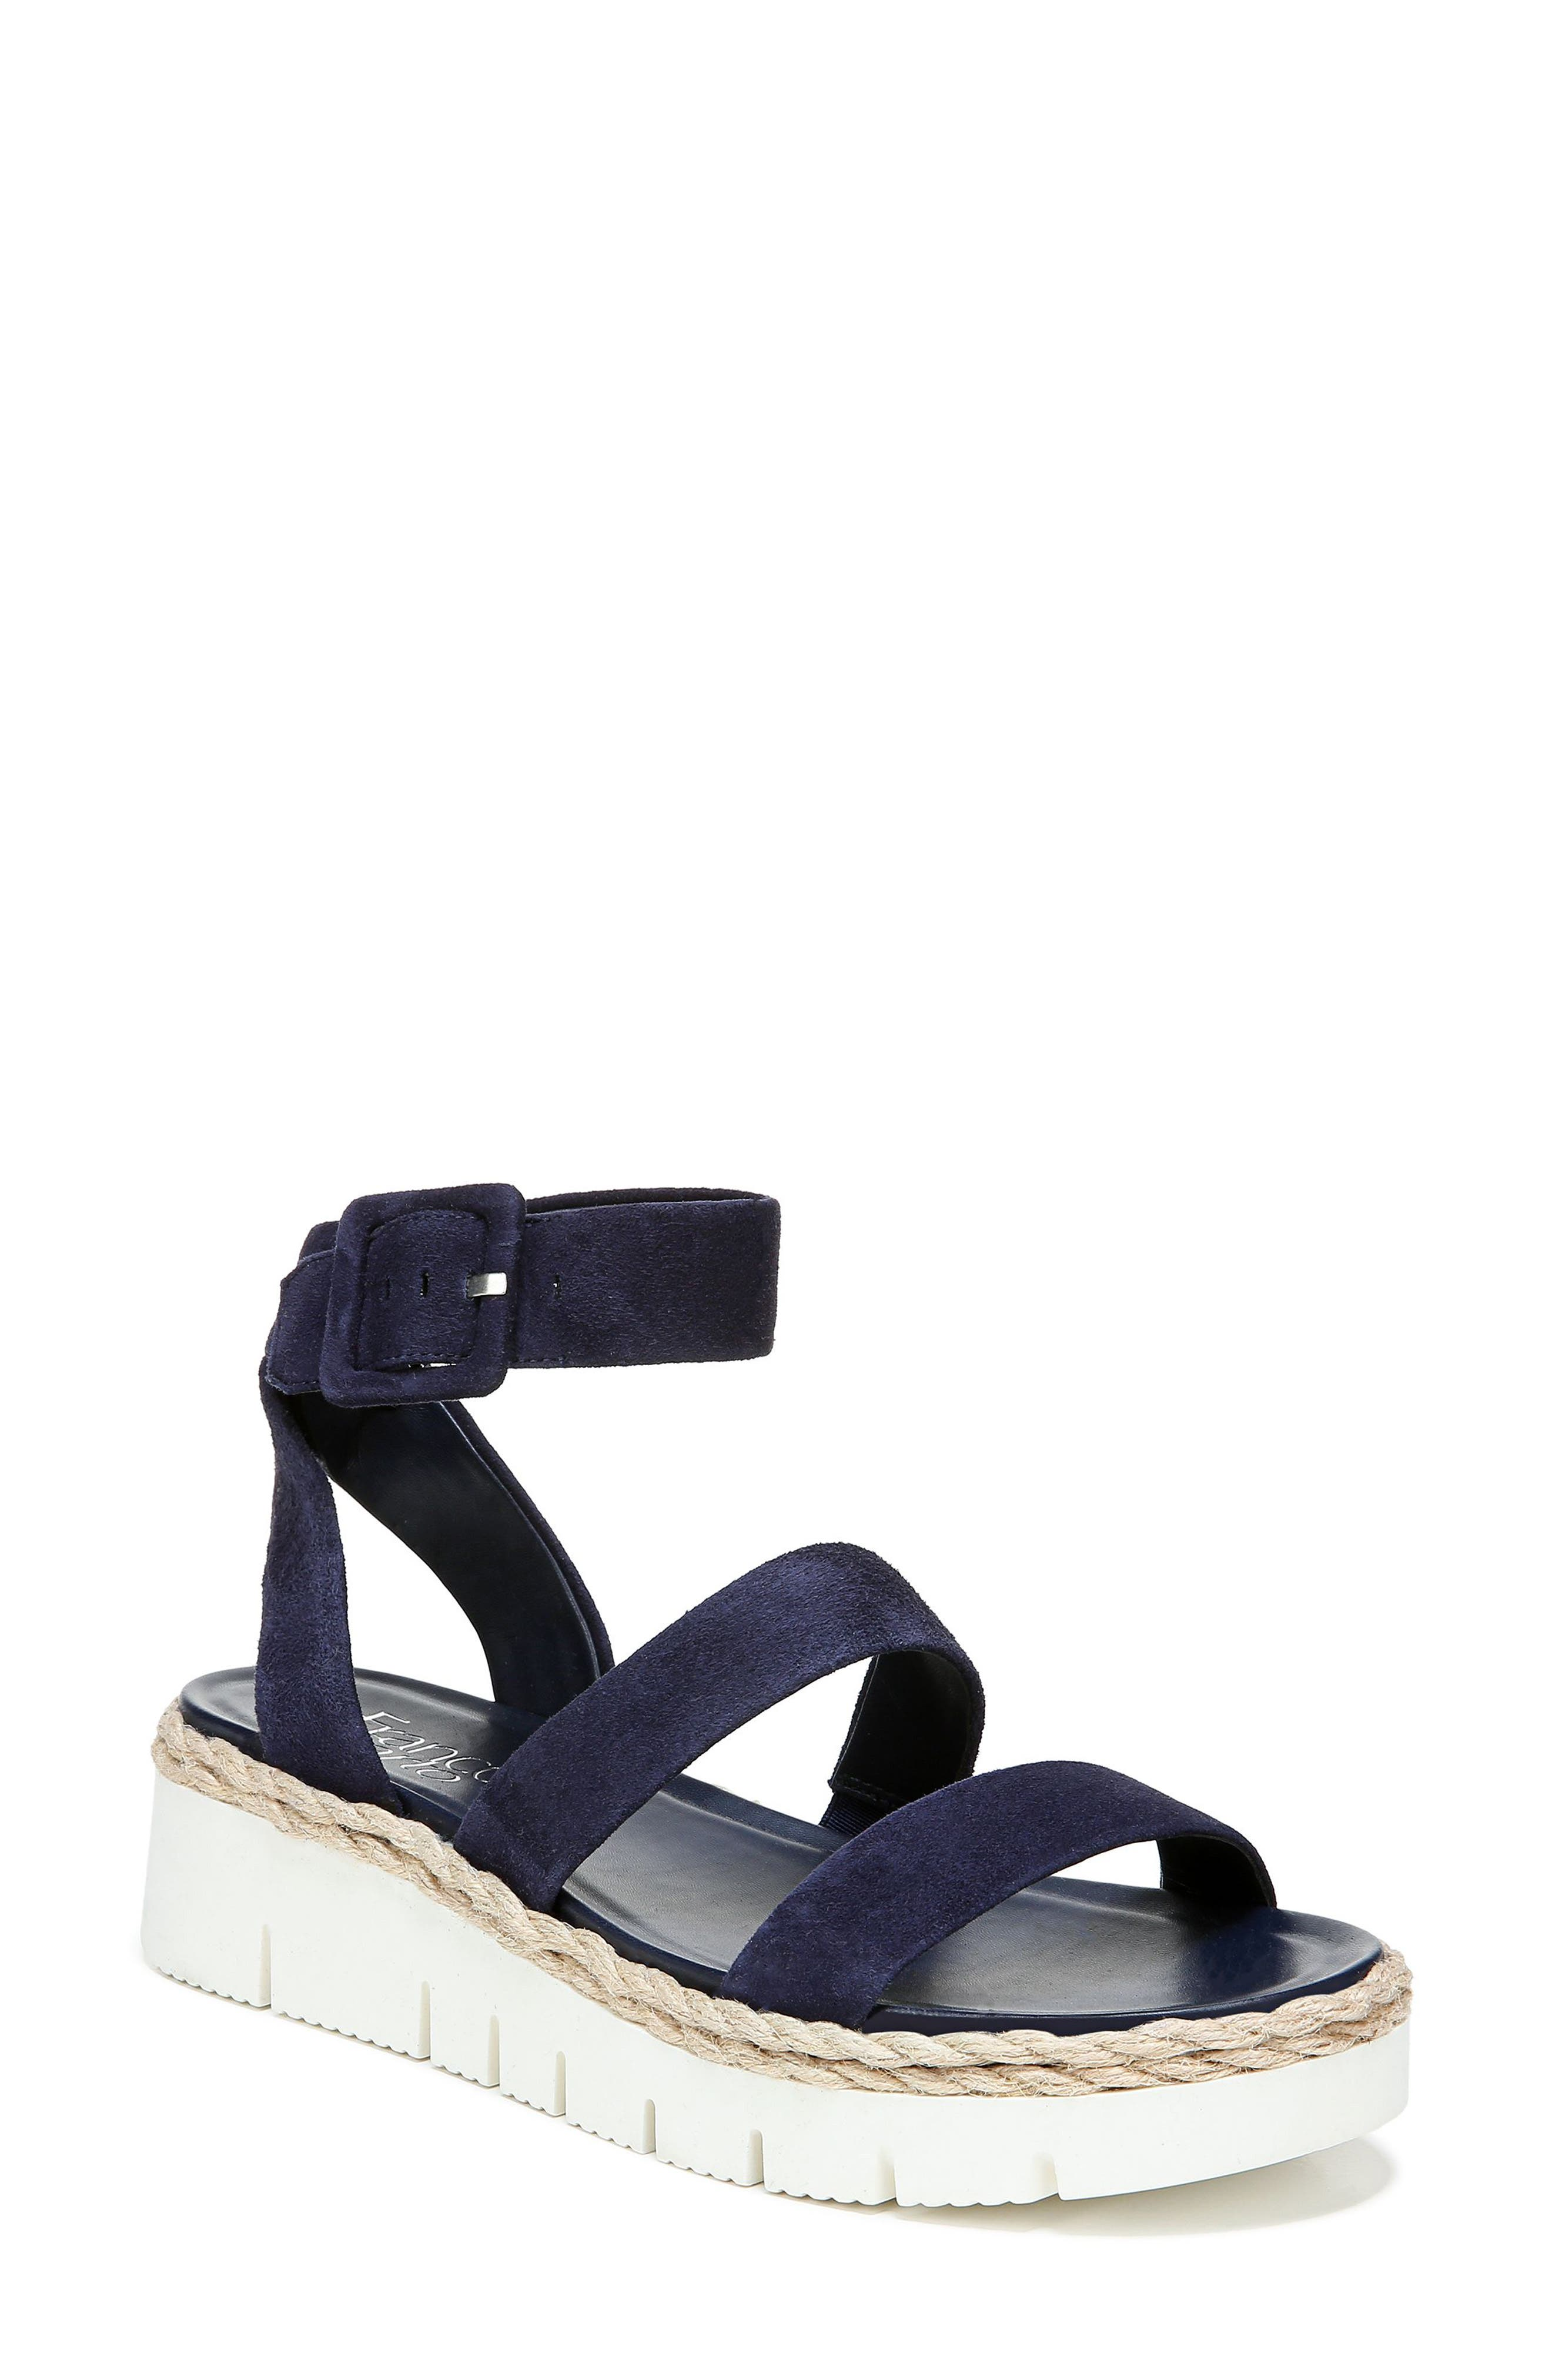 A sporty platform sole and espadrille-inspired detailing enhance the up-for-anything style of an ankle-strap sandal secured with a wrapped buckle. Style Name: Franco Sarto Jackson Ankle Strap Platform Sandal (Women). Style Number: 6080328. Available in stores.